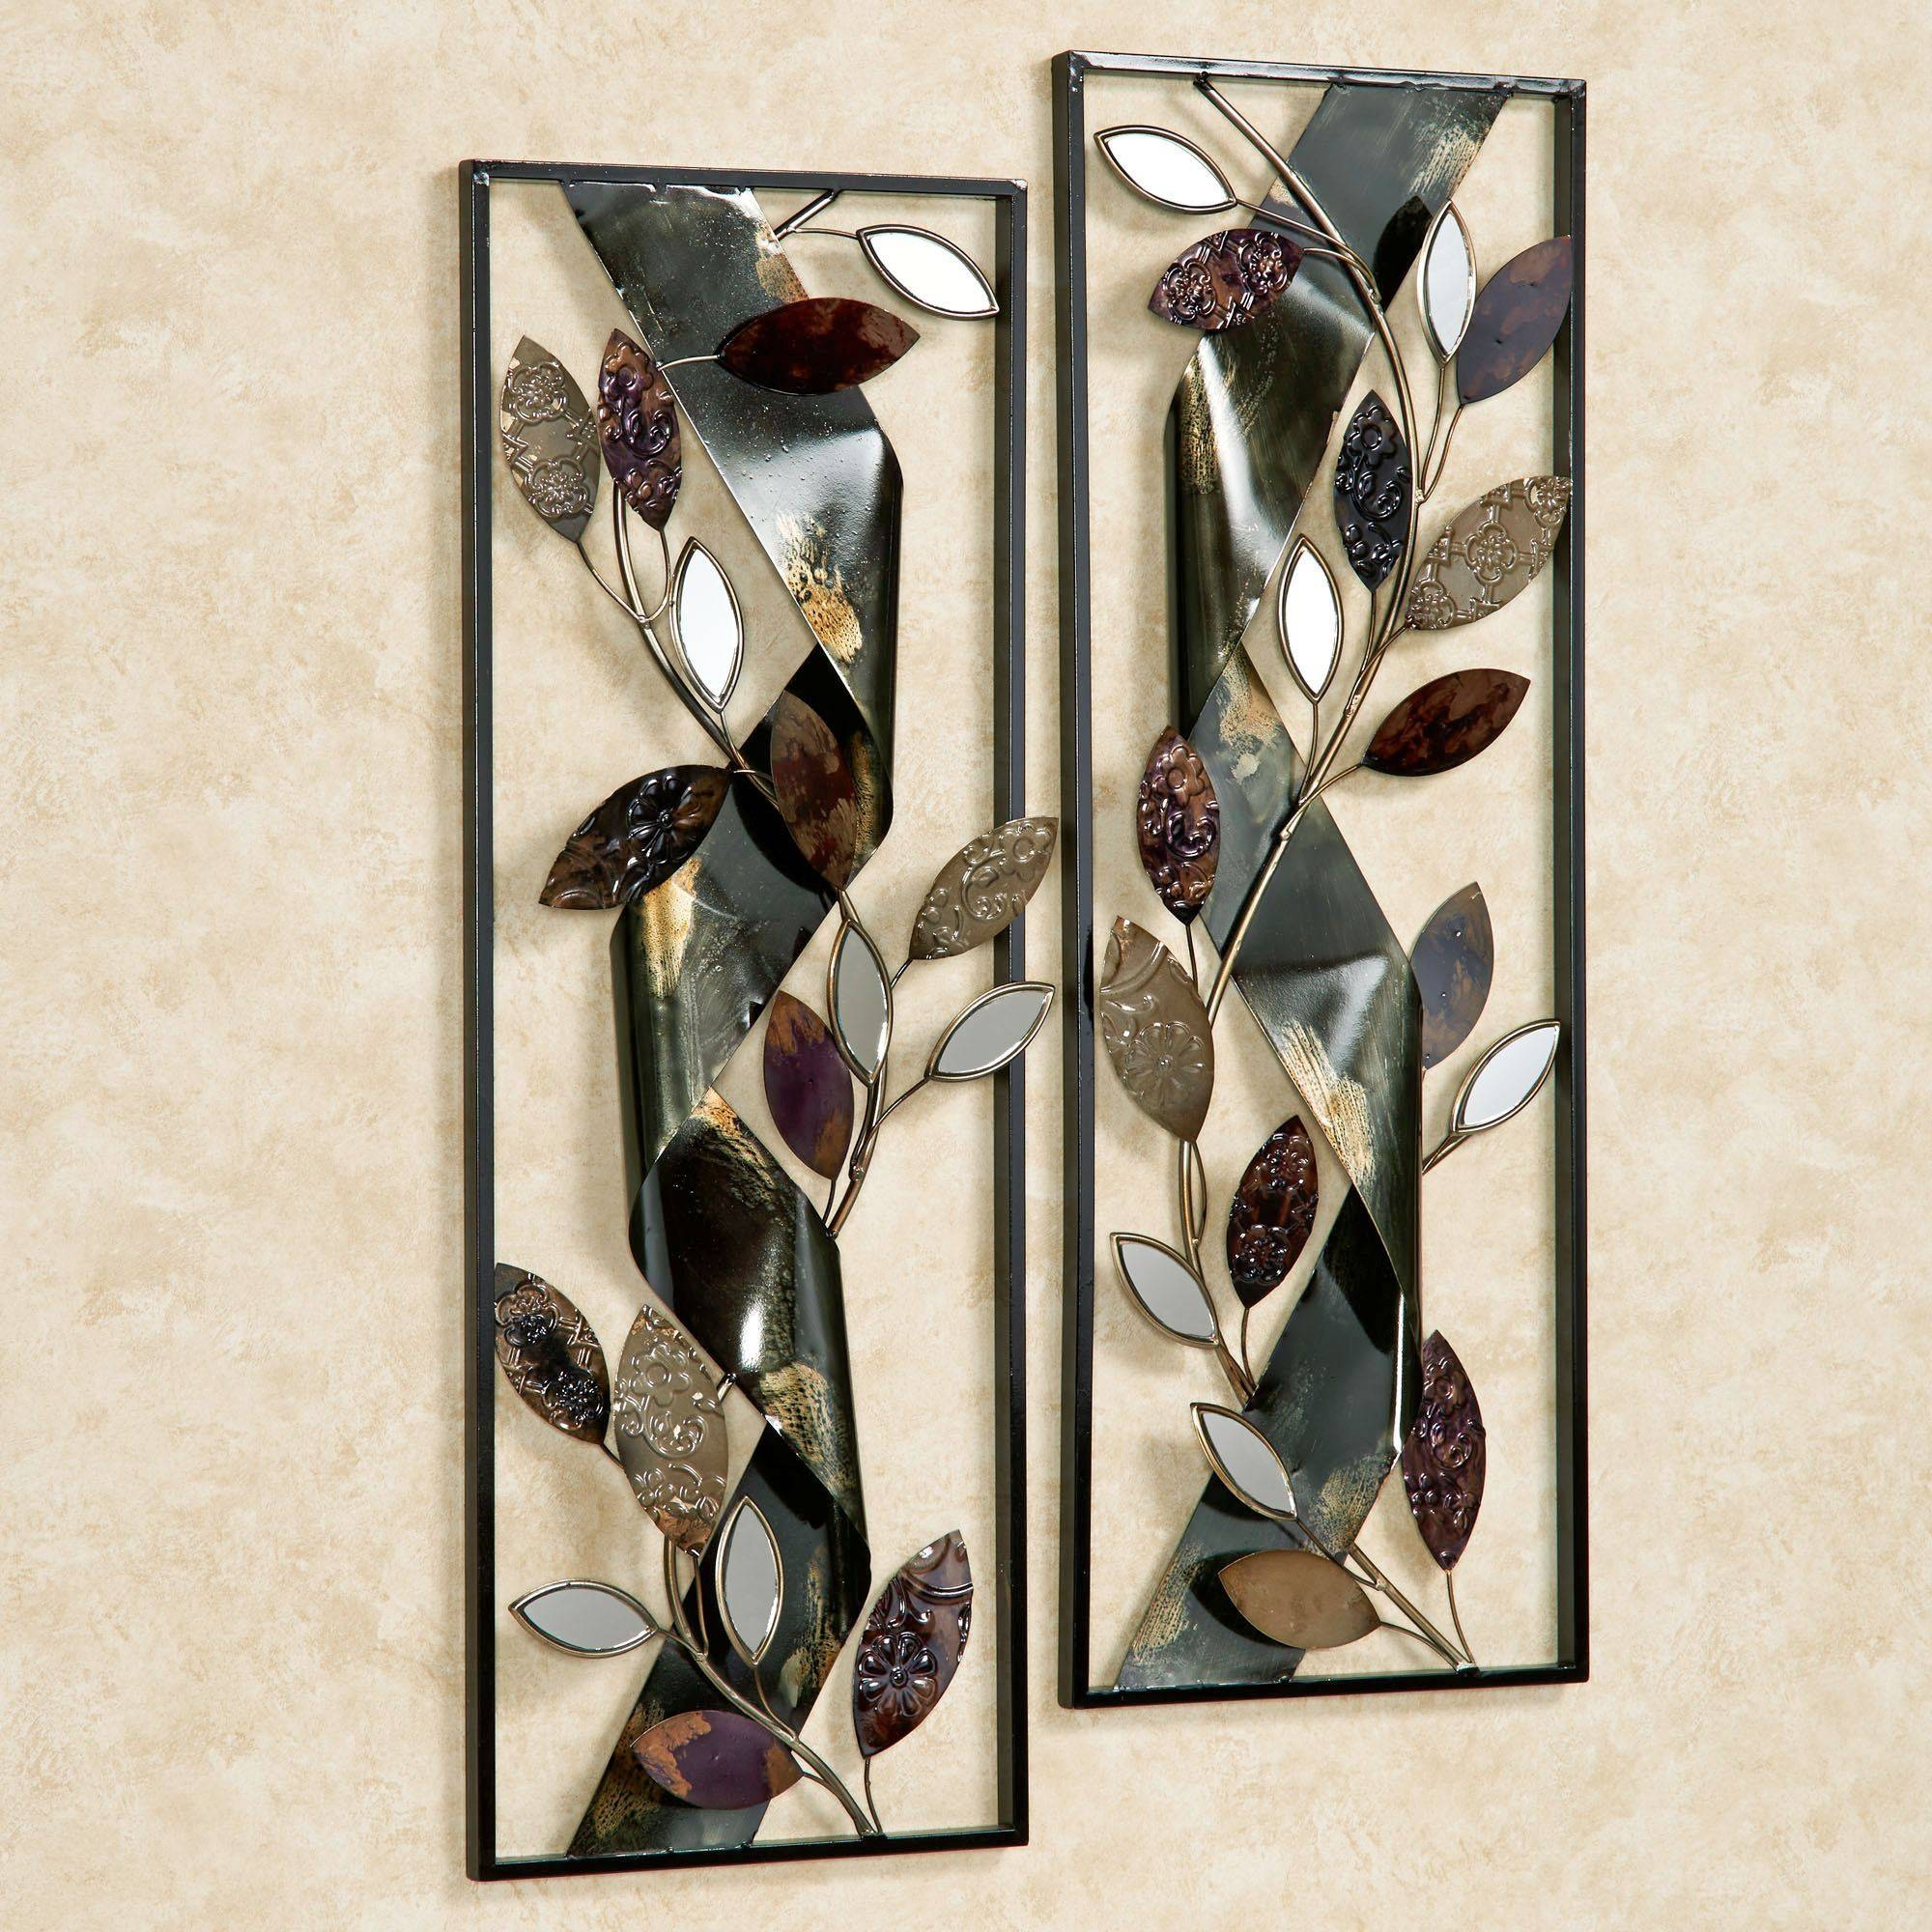 Autumn Whisper Metal Wall Art Panel Set Pertaining To Most Recent Metal Wall Art Panels (View 10 of 20)